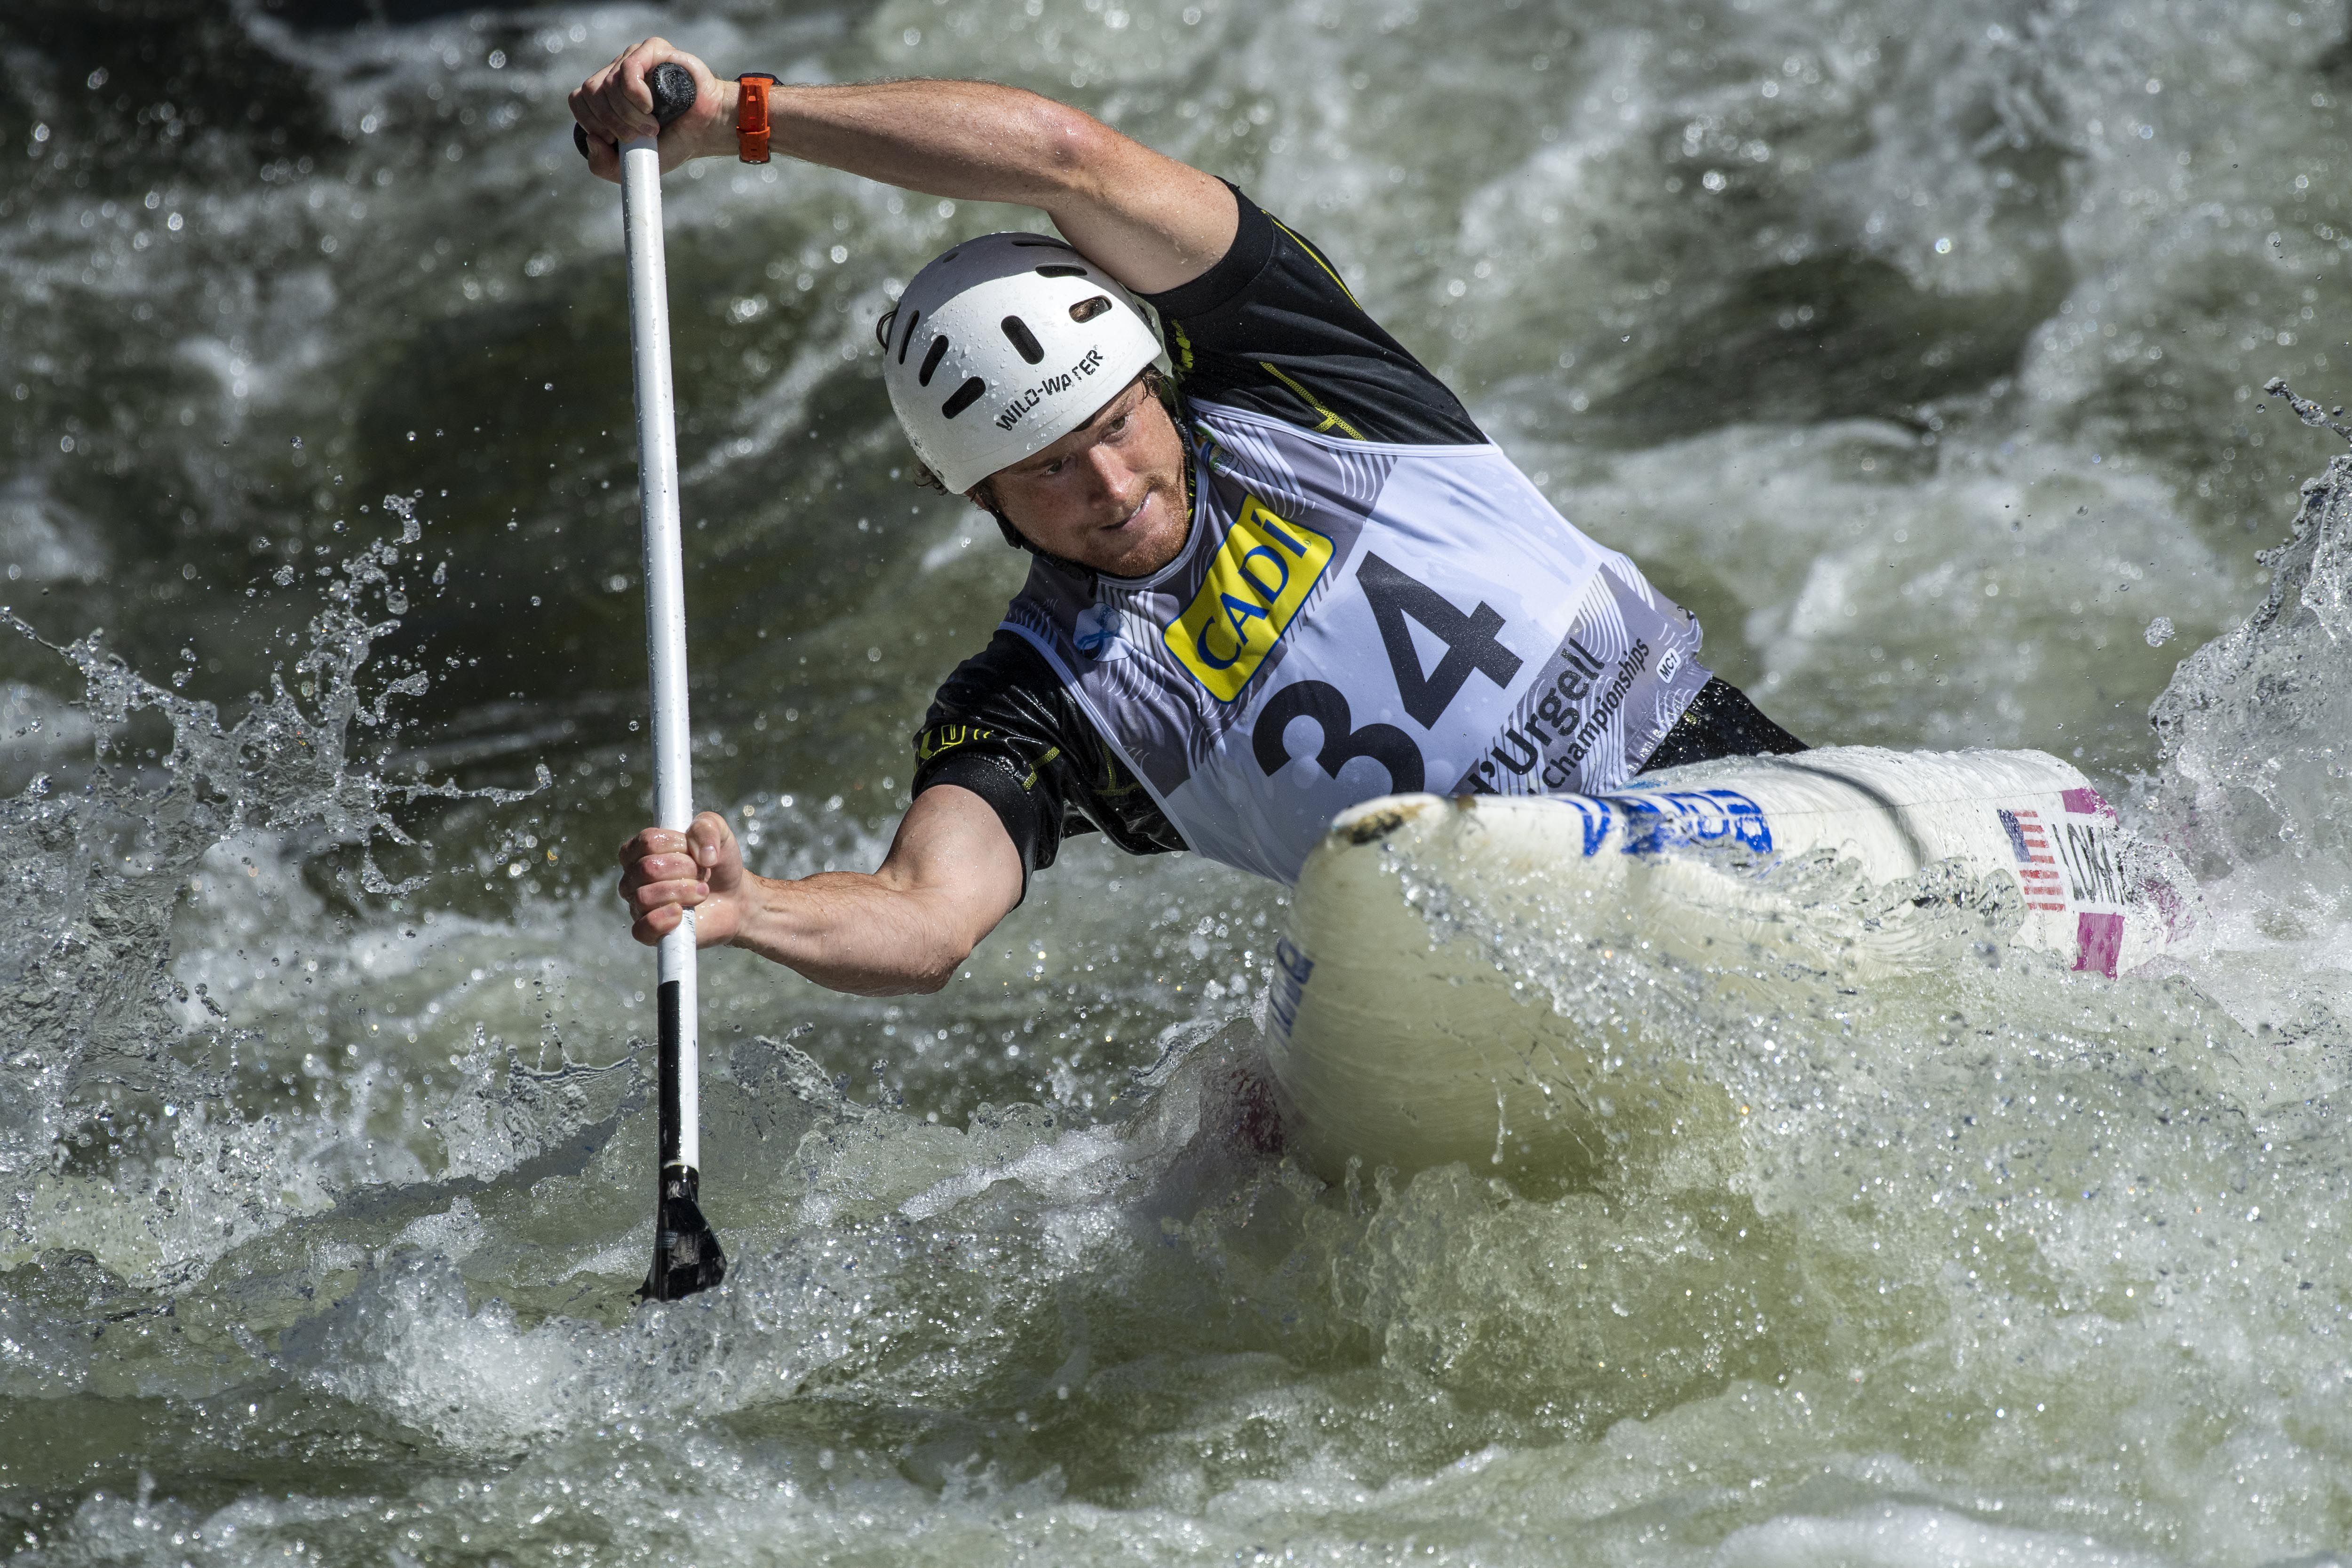 Zachary Lokken competes in the Canoe Slalom World Championships in 2019.